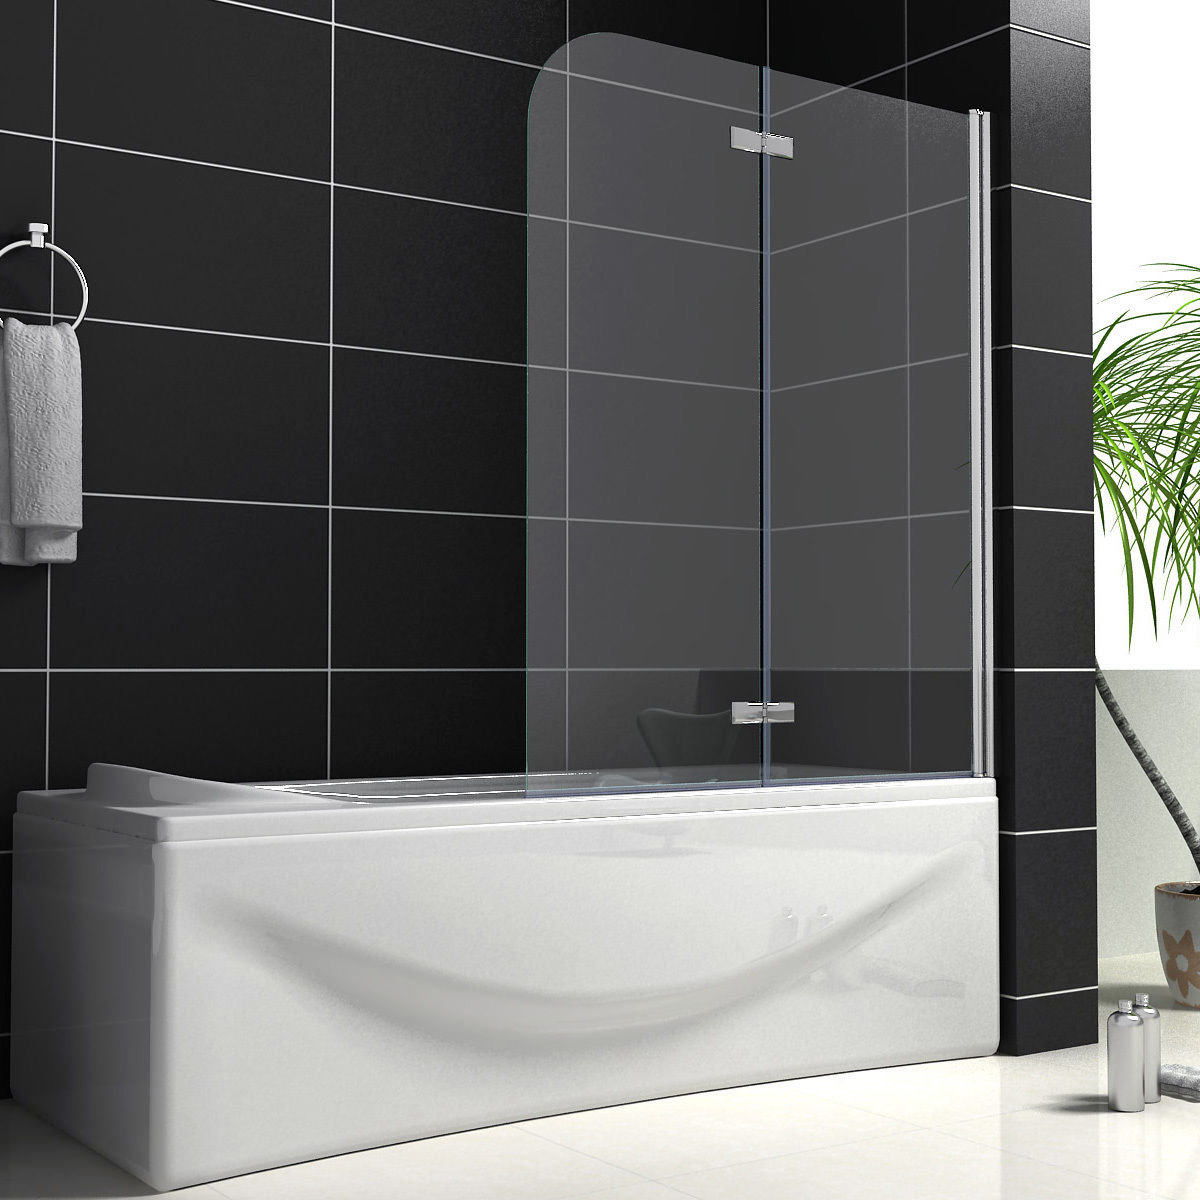 bath shower screens uk bath screens uk. Black Bedroom Furniture Sets. Home Design Ideas